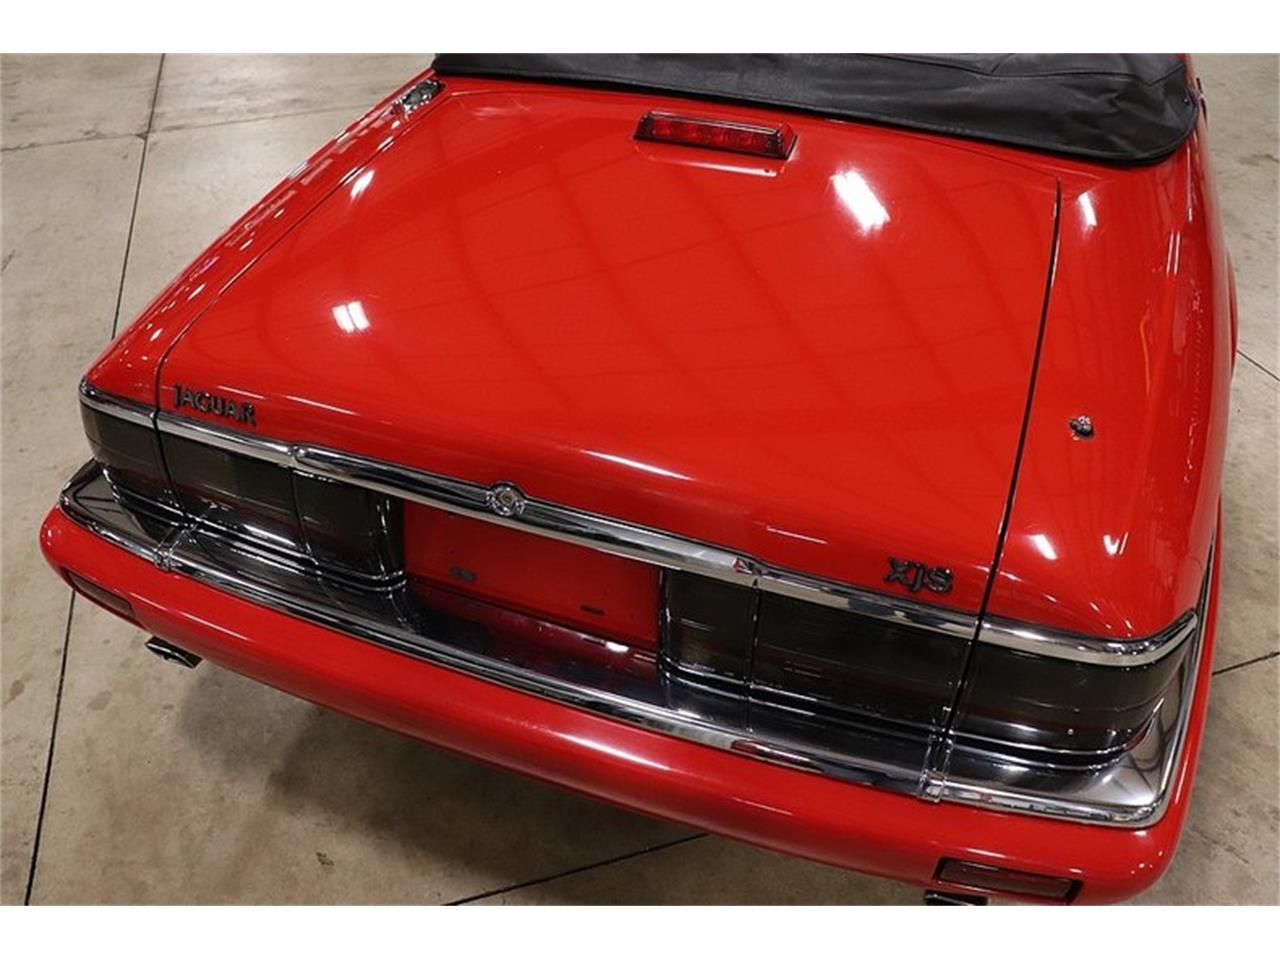 Large Picture of '94 Jaguar XJS located in Kentwood Michigan - $14,900.00 - PZMF